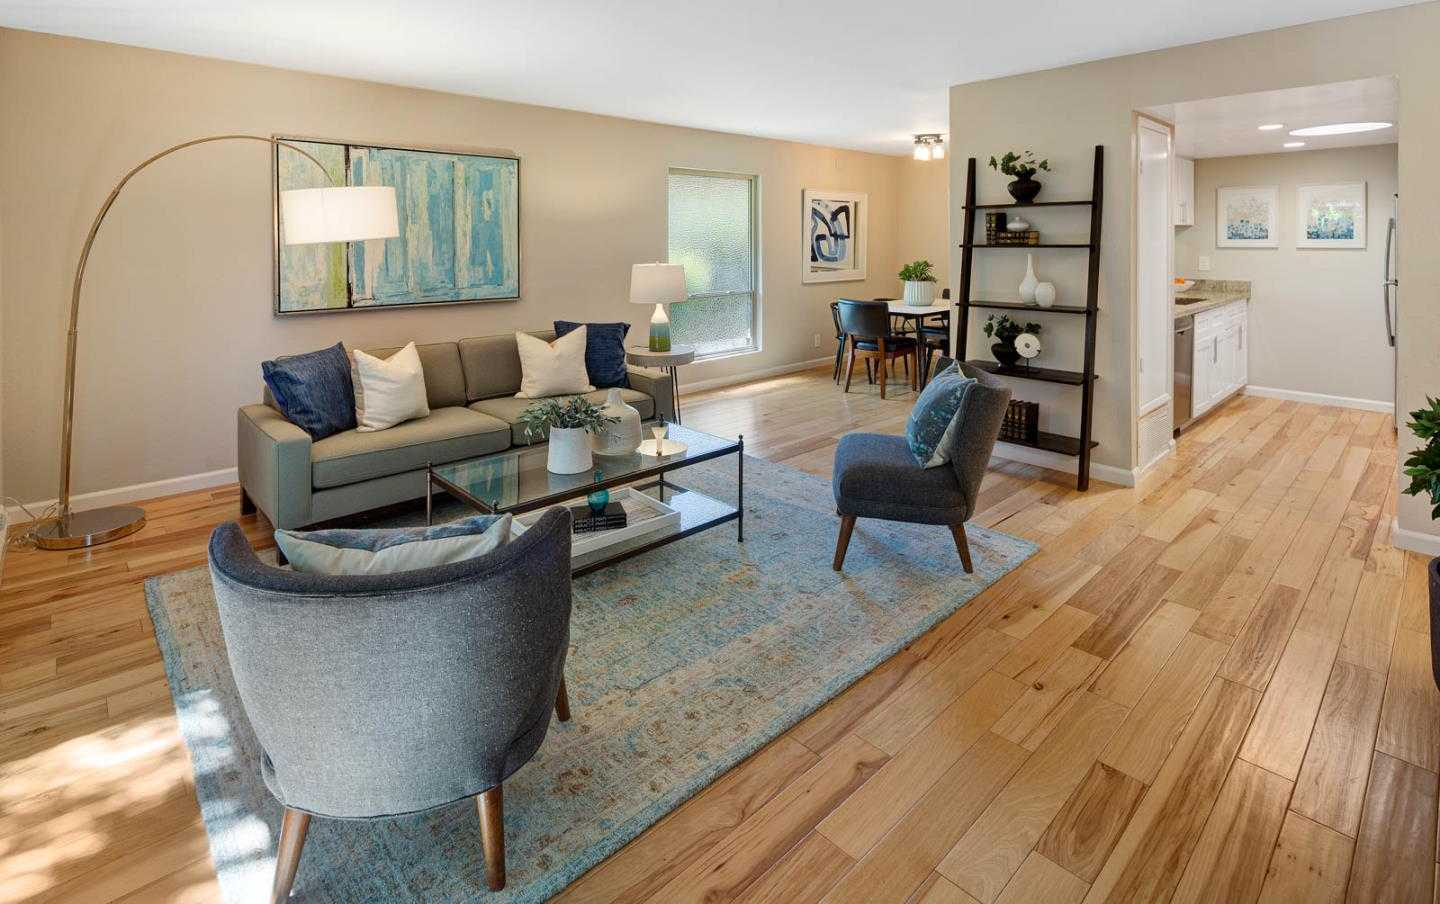 $728,000 - 2Br/1Ba -  for Sale in Sunnyvale